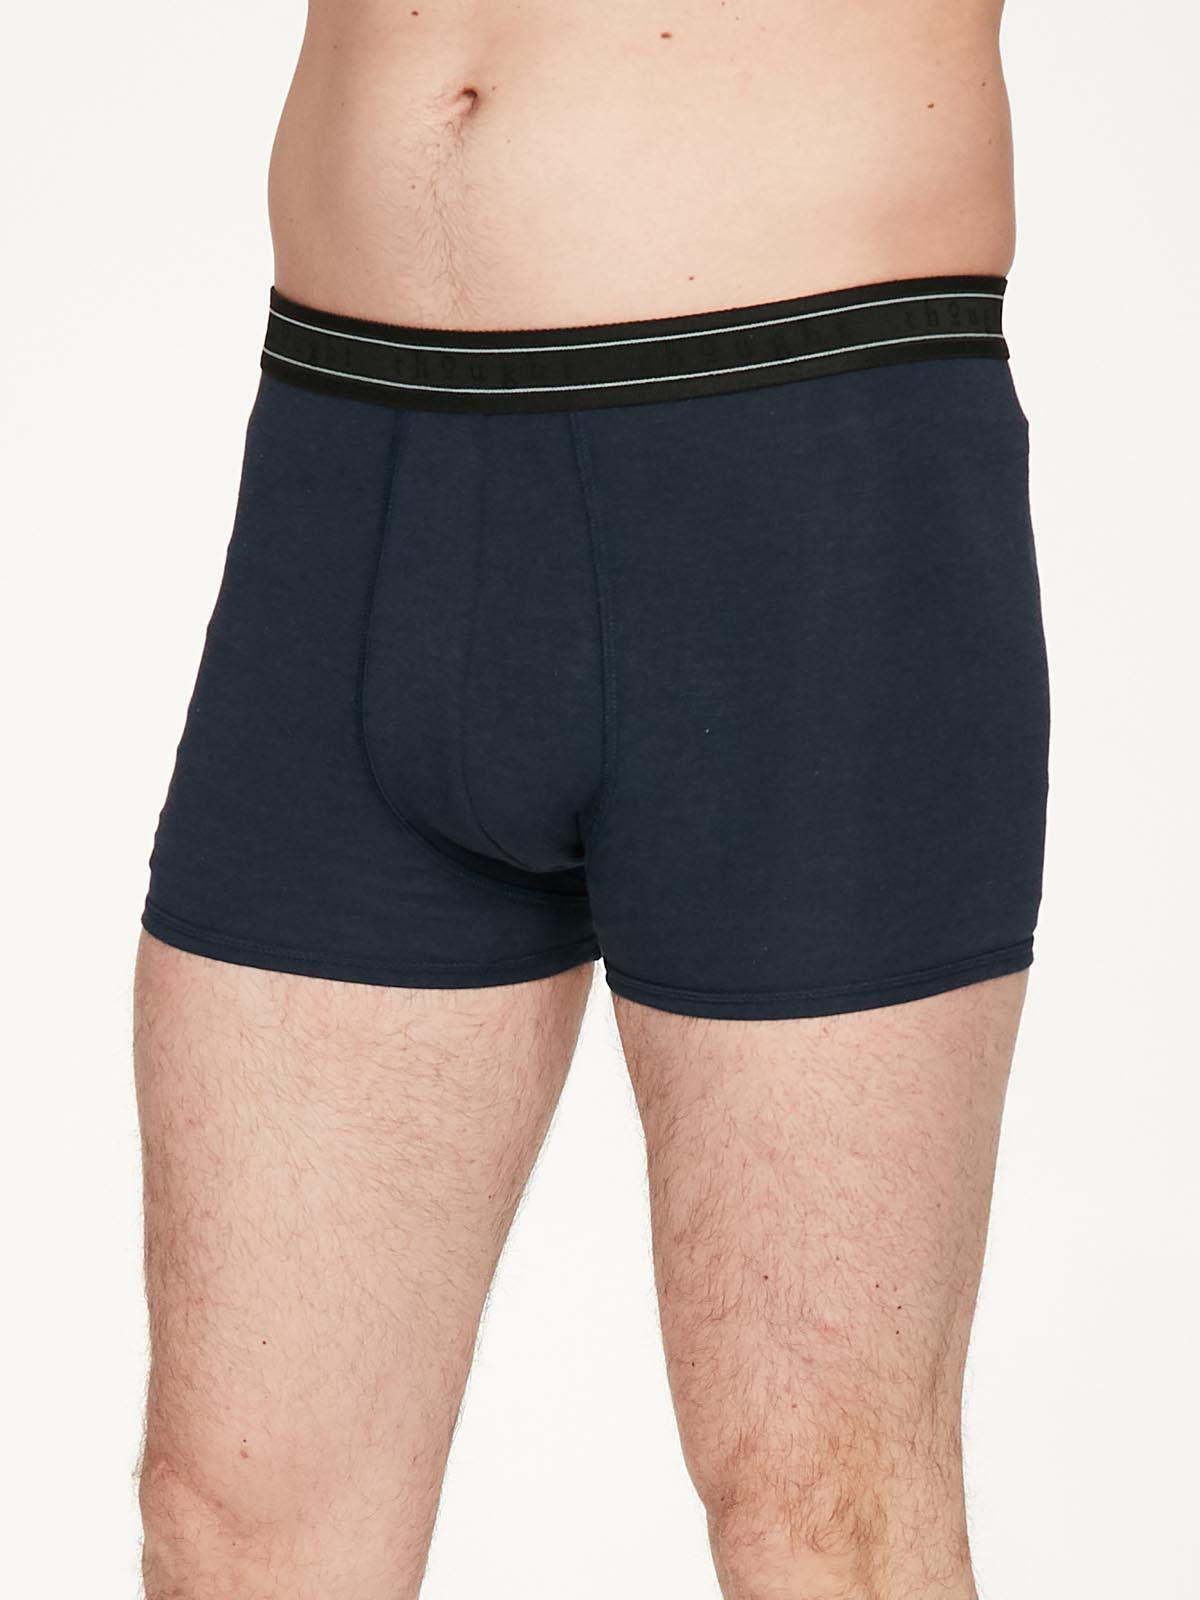 Black Bamboo Boxers